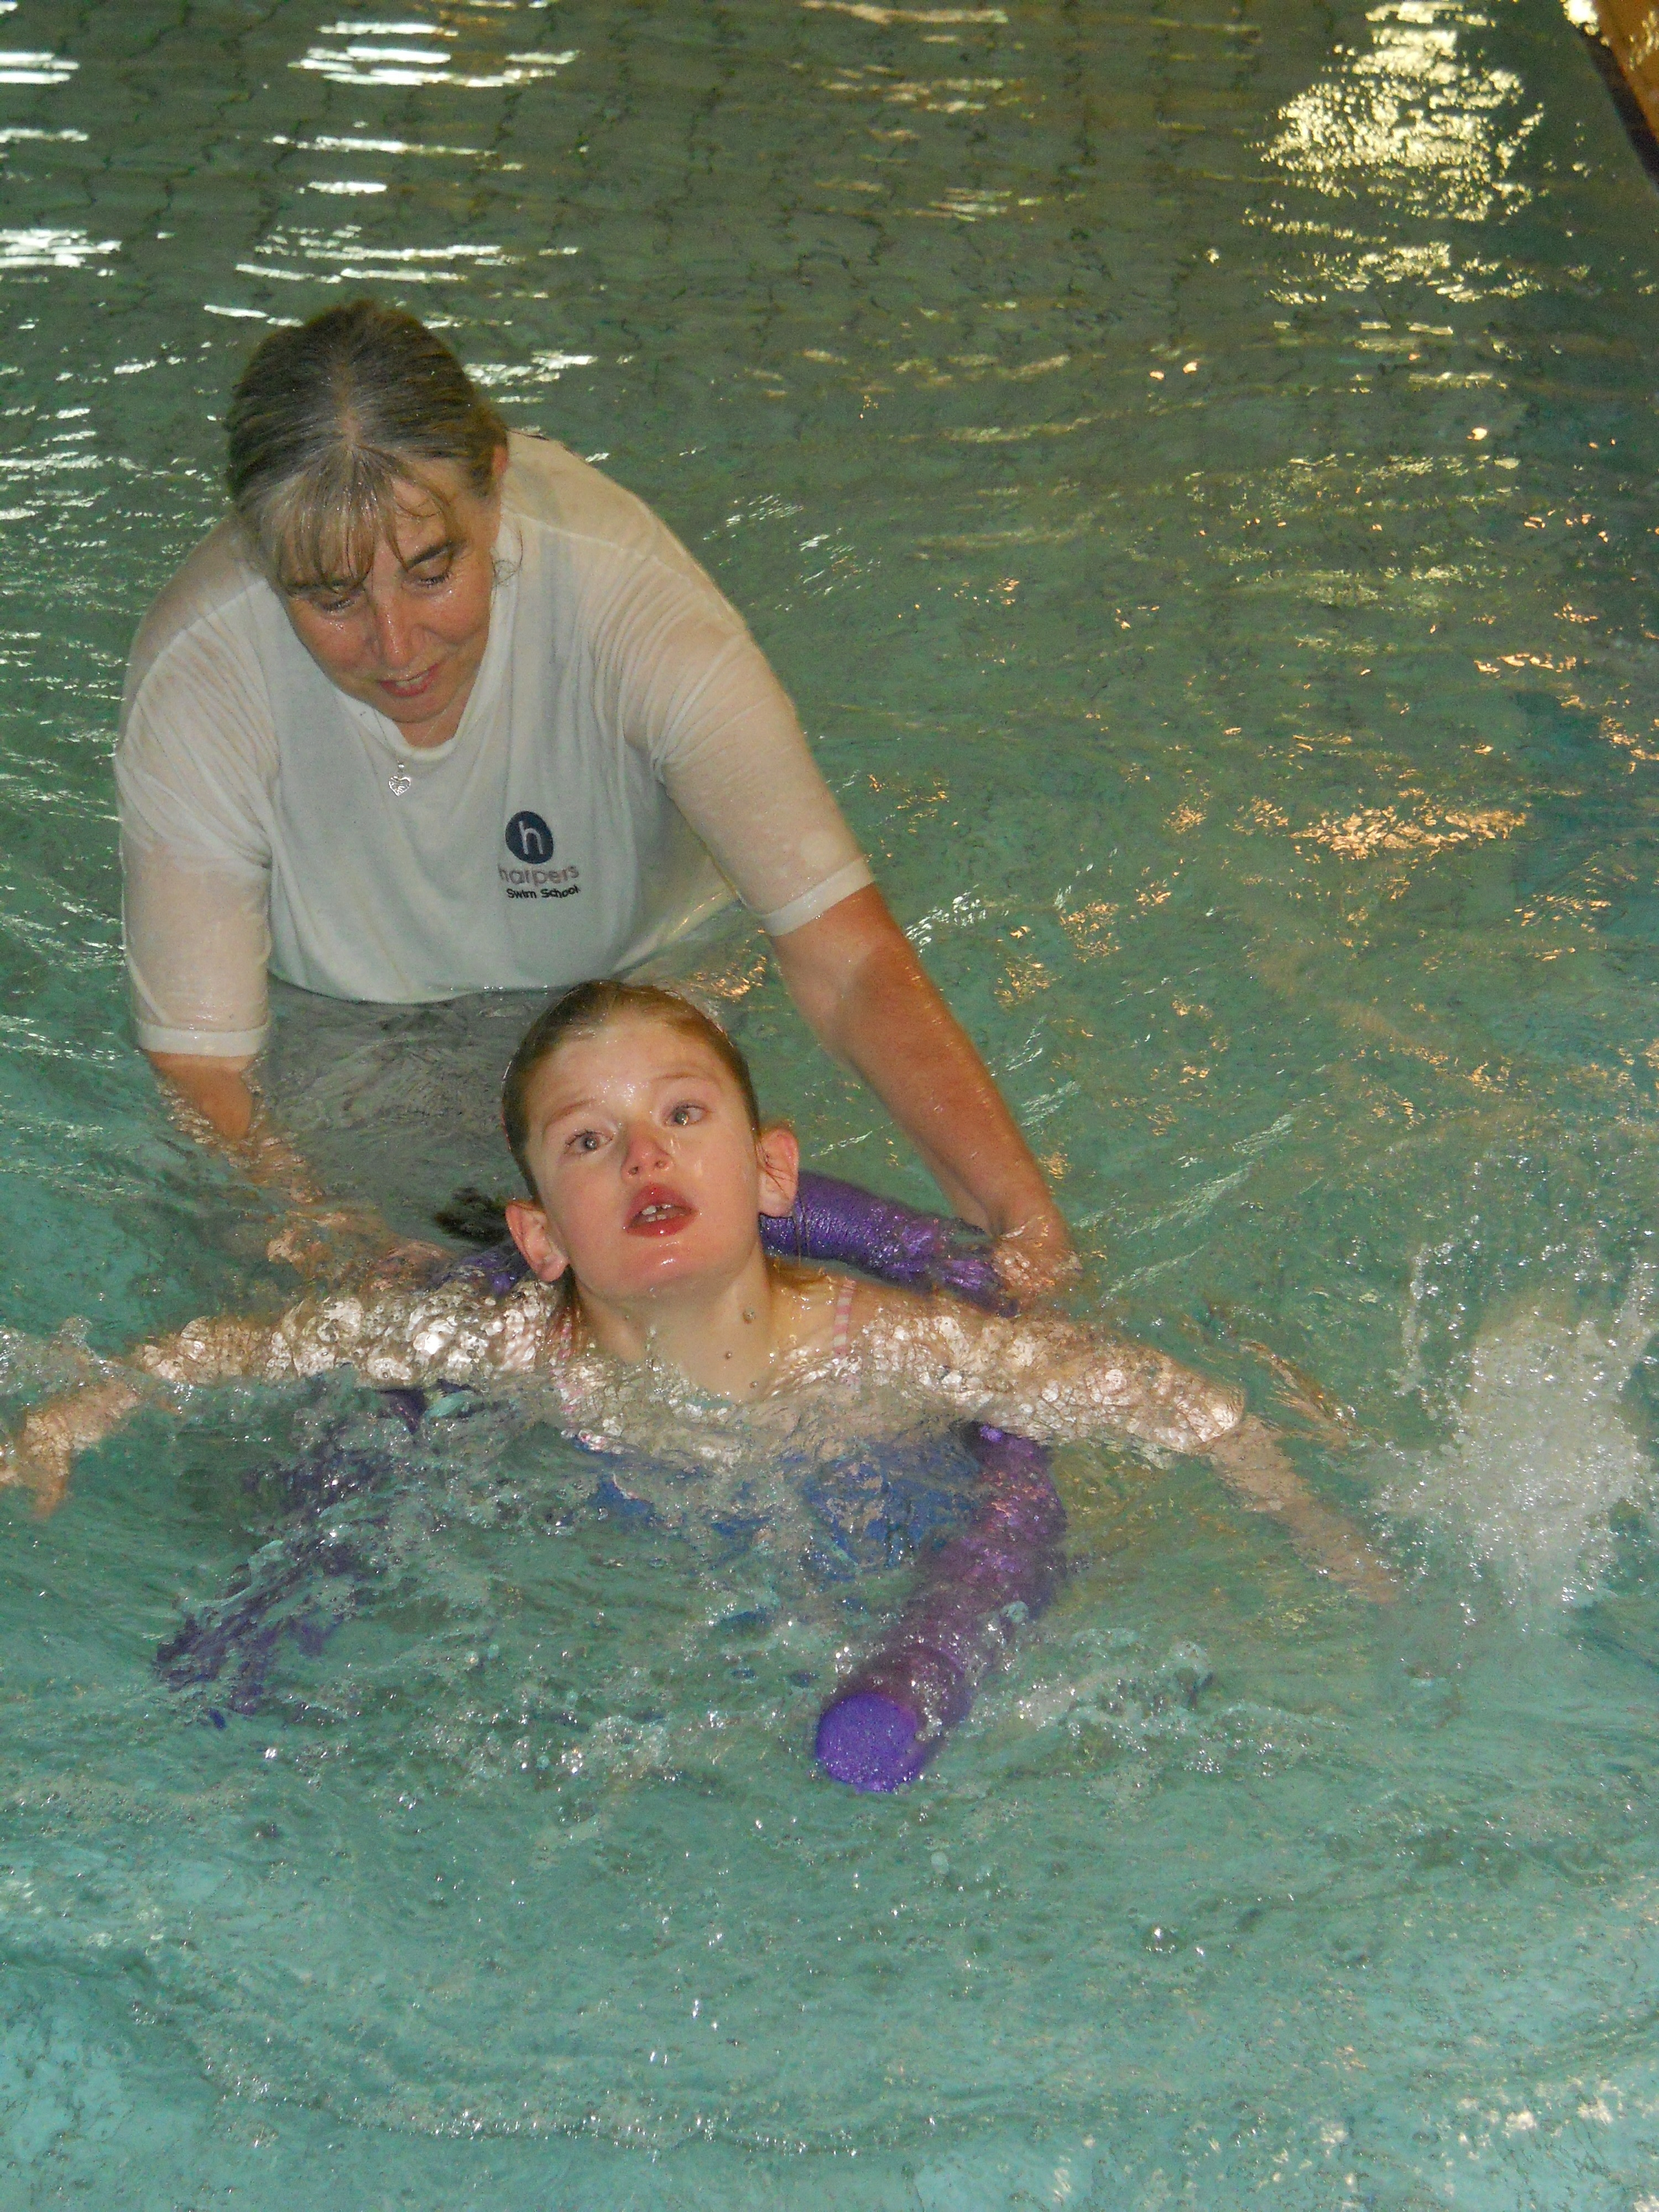 As a baby, Isabelle attended weekly swimming classes at Dorking Sports Centre and from an early age she loved being in water.